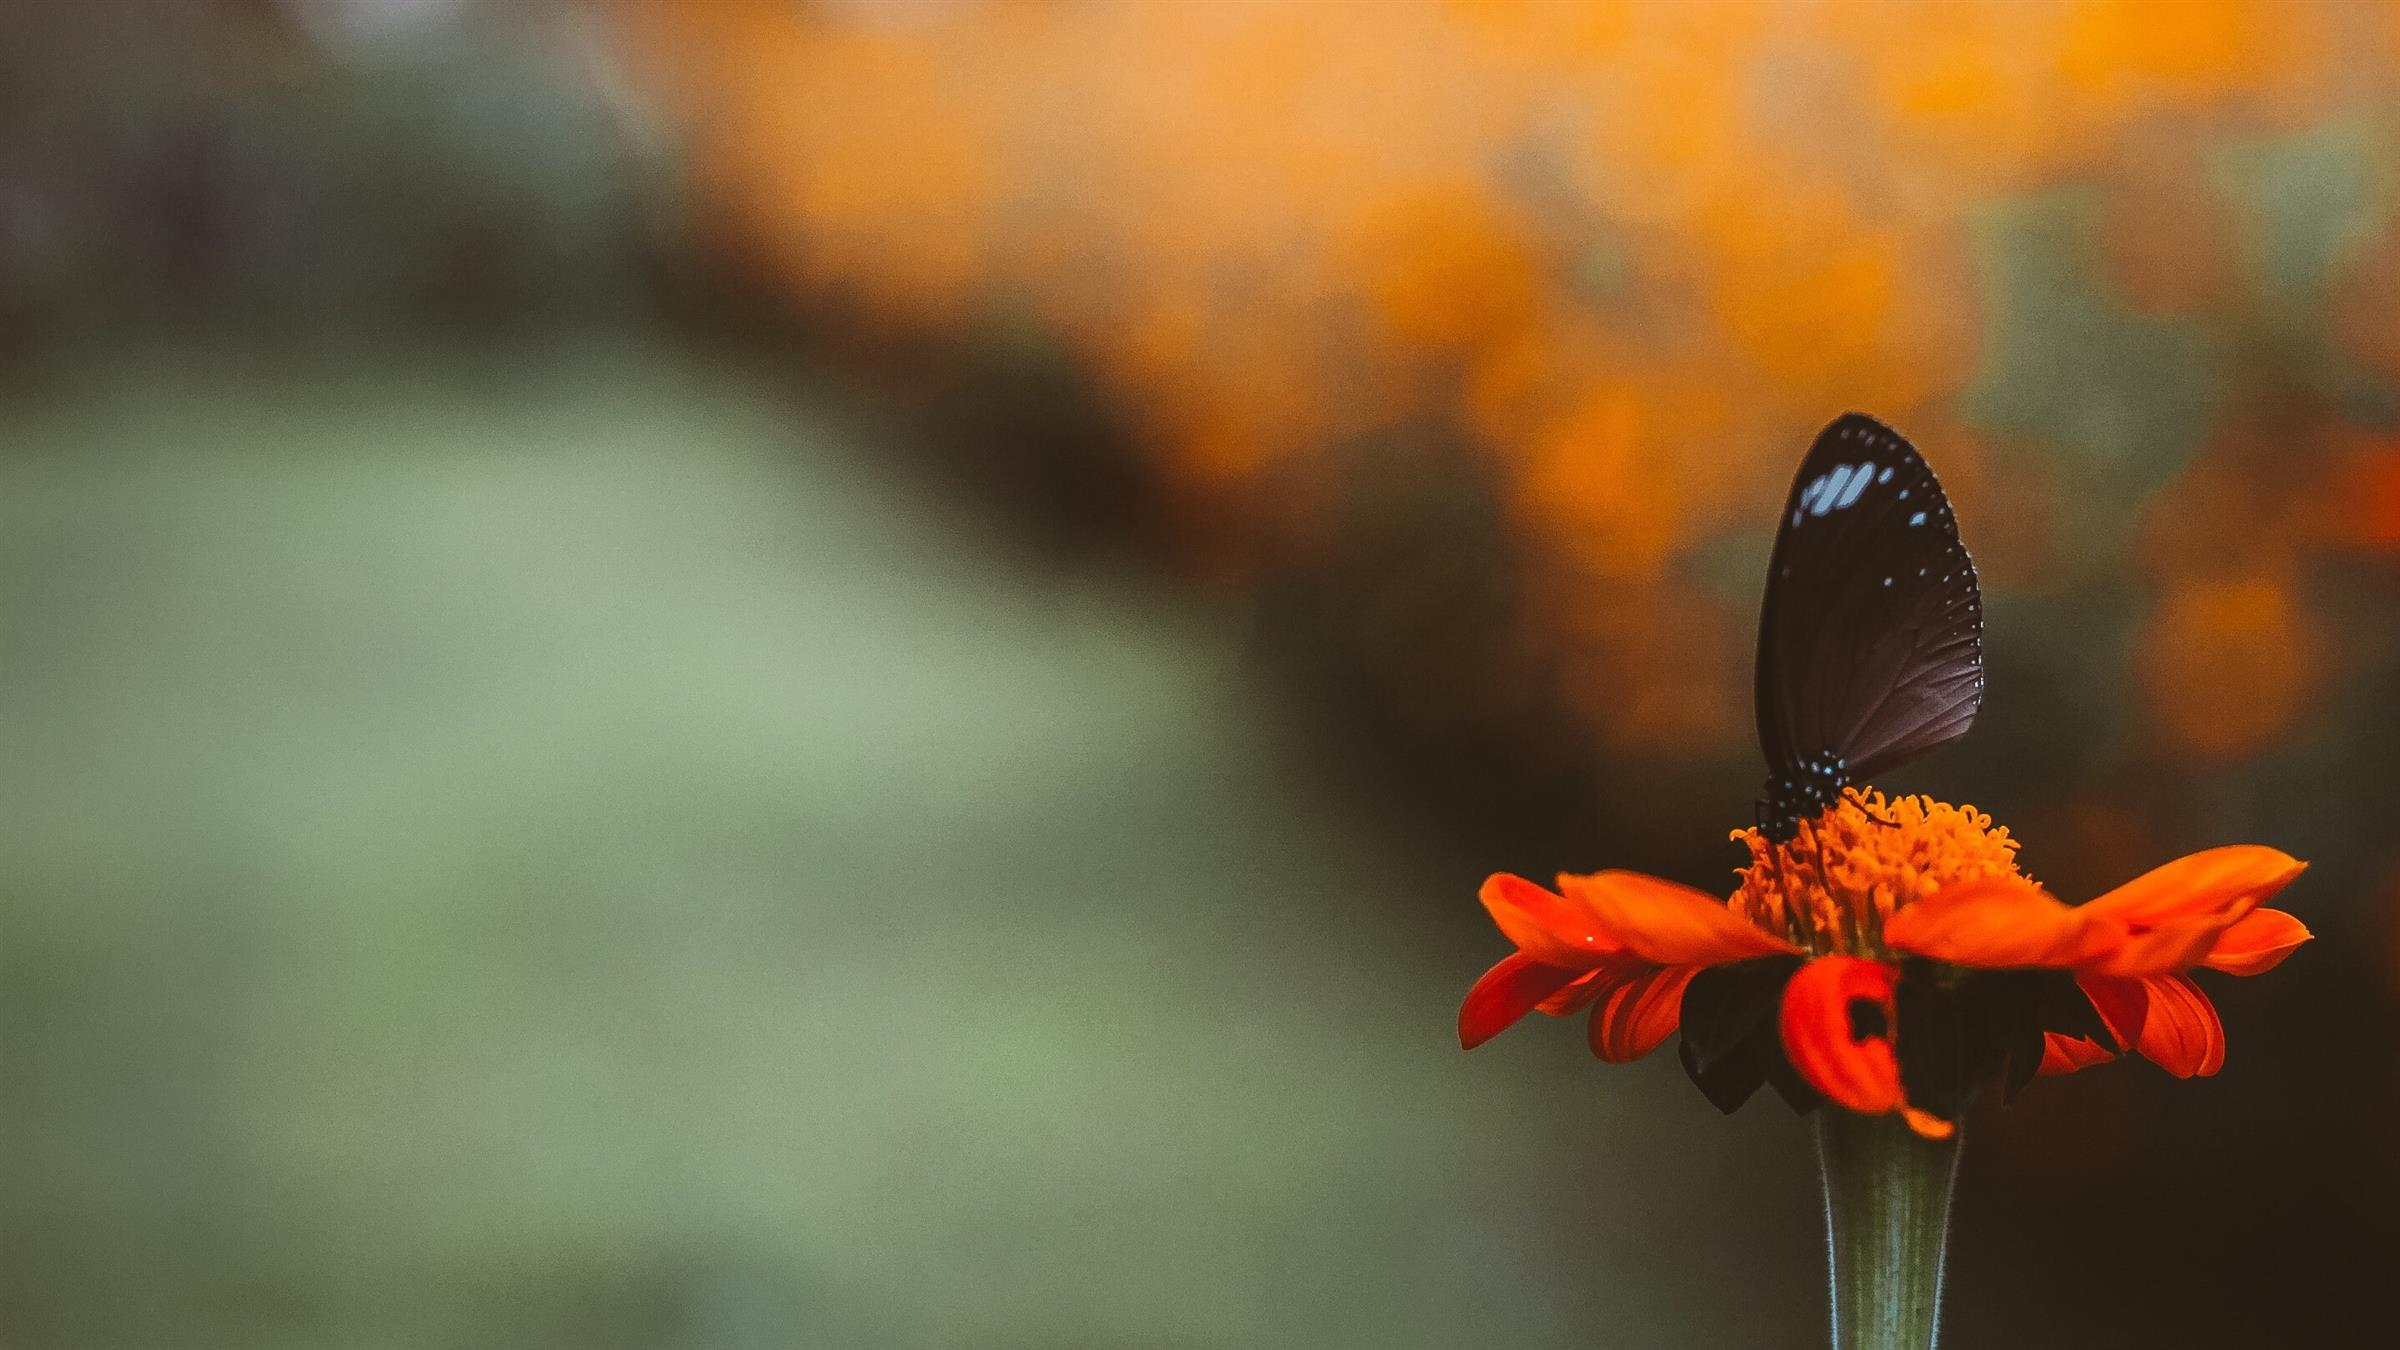 2400x1350 Black Butterfly on Orange Flower Famous Wallpaper